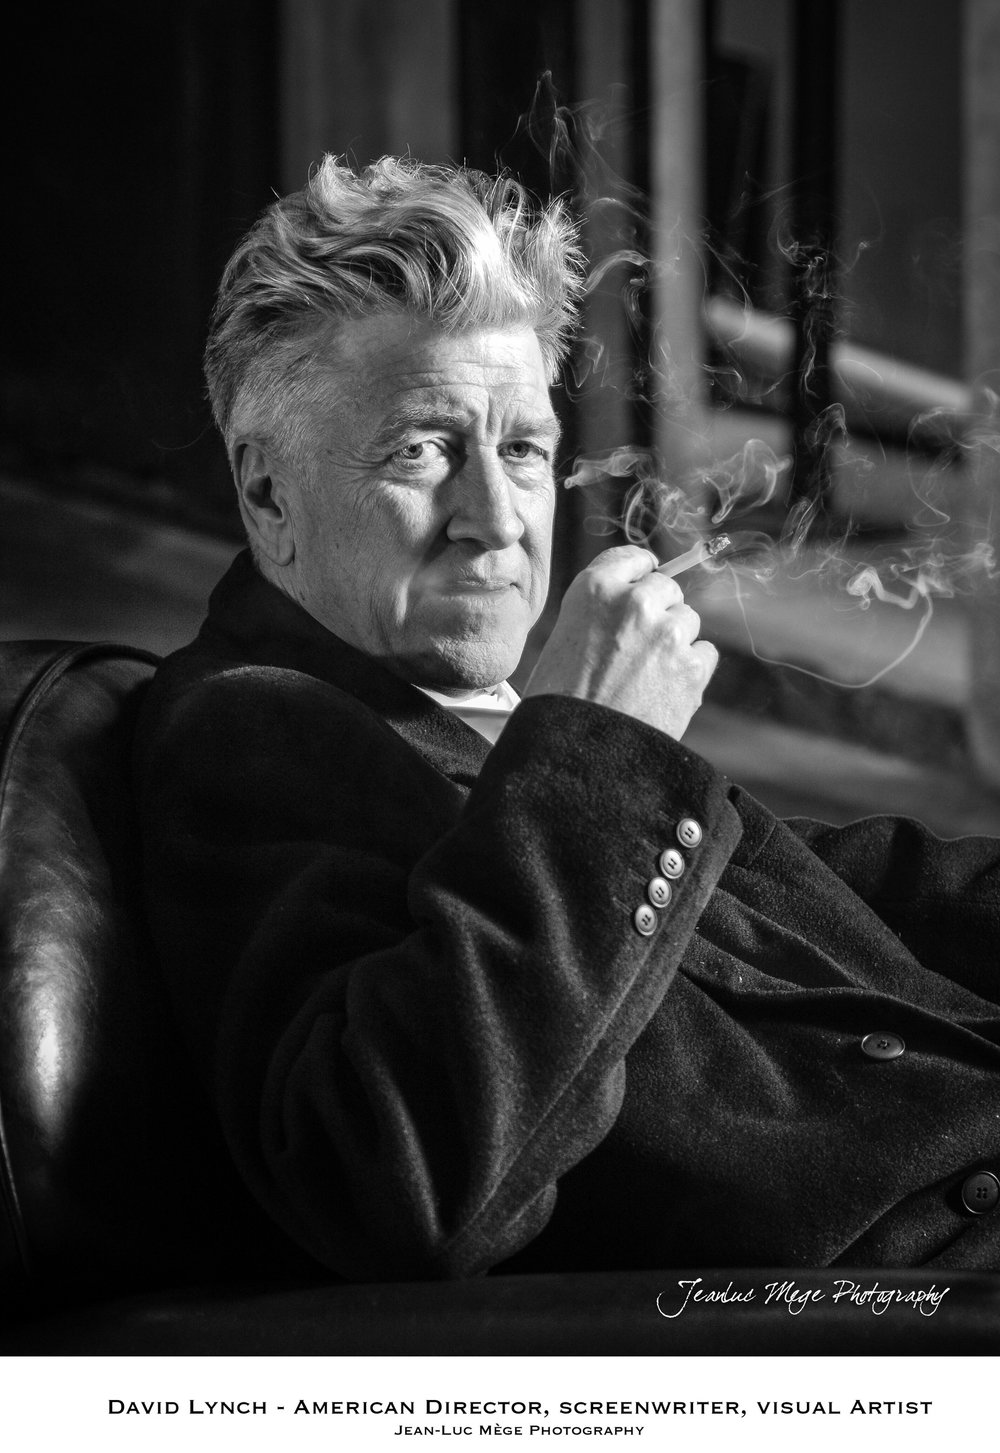 David Lynch 2016 tittle ok@jeanlucmege-6498.jpg